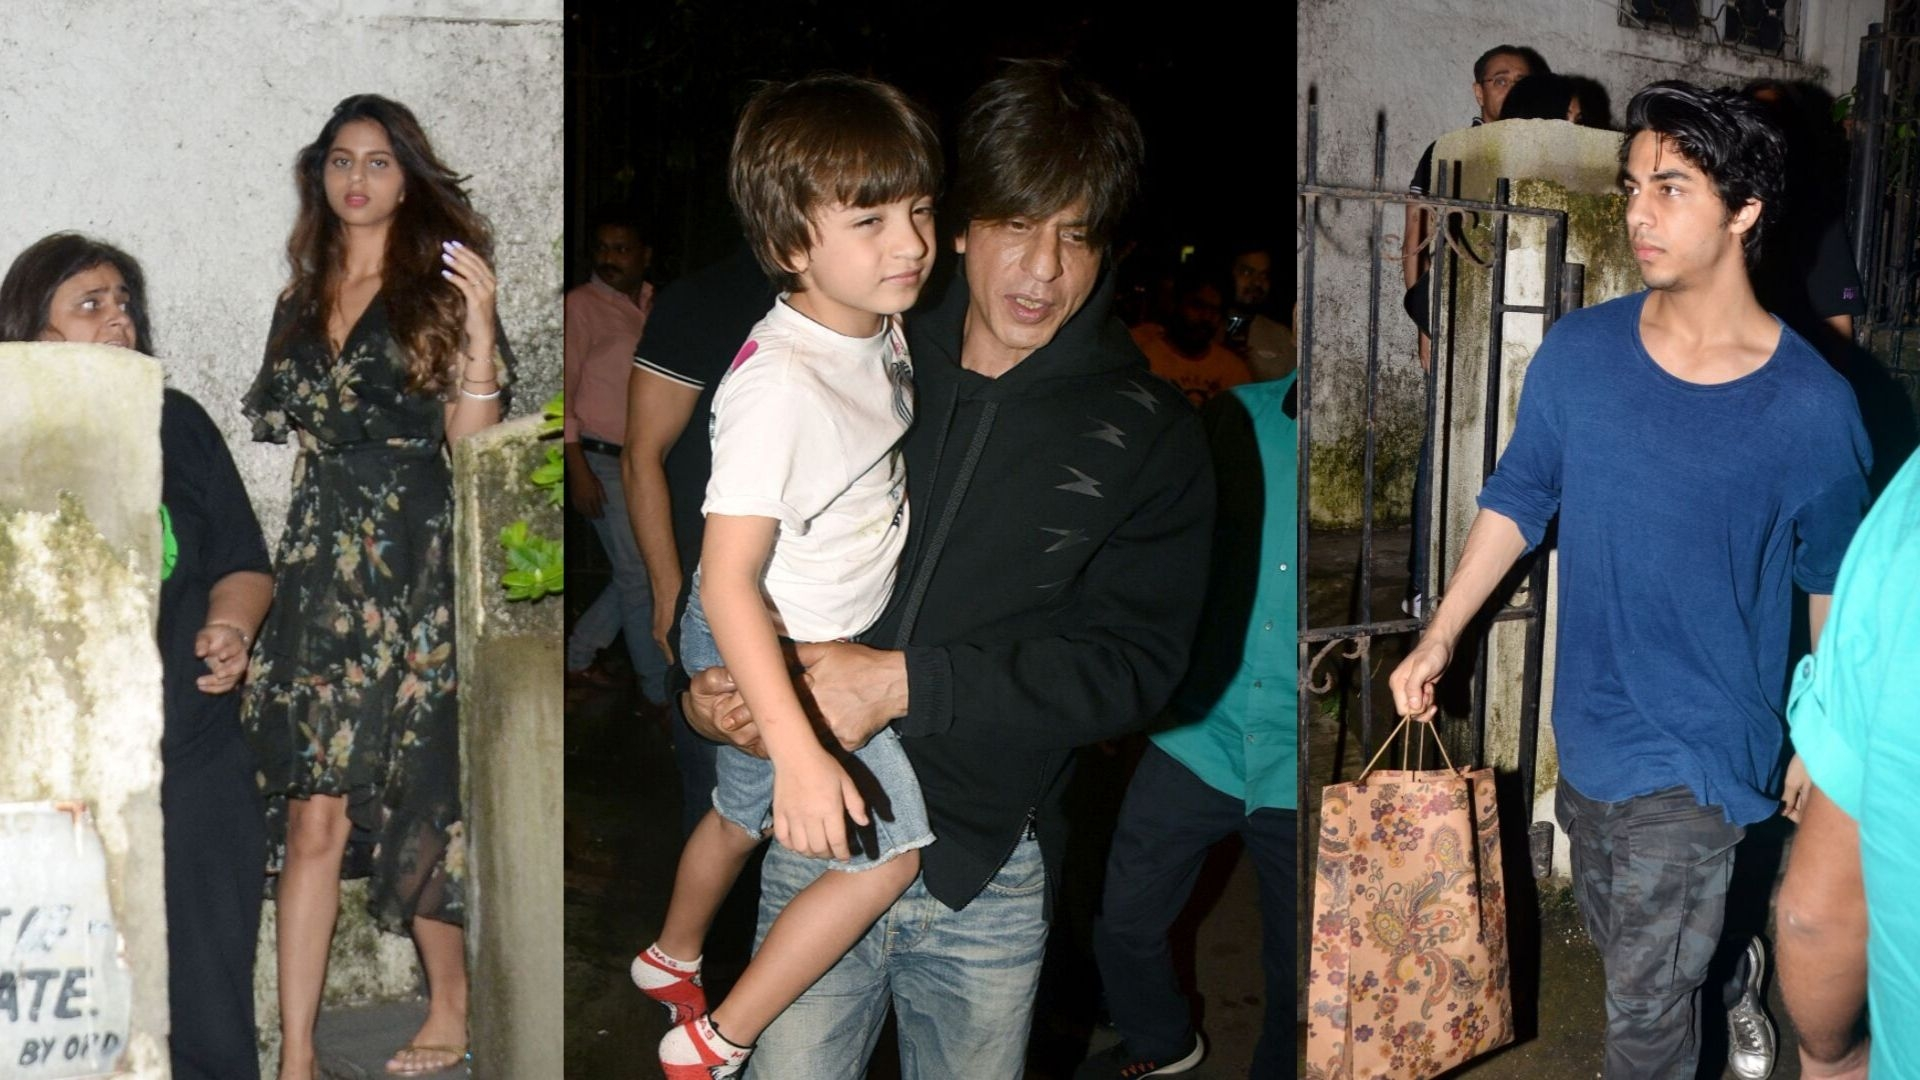 Shah Rukh Khan Spotted On a Night Out With Aryan, Suhana, Gauri